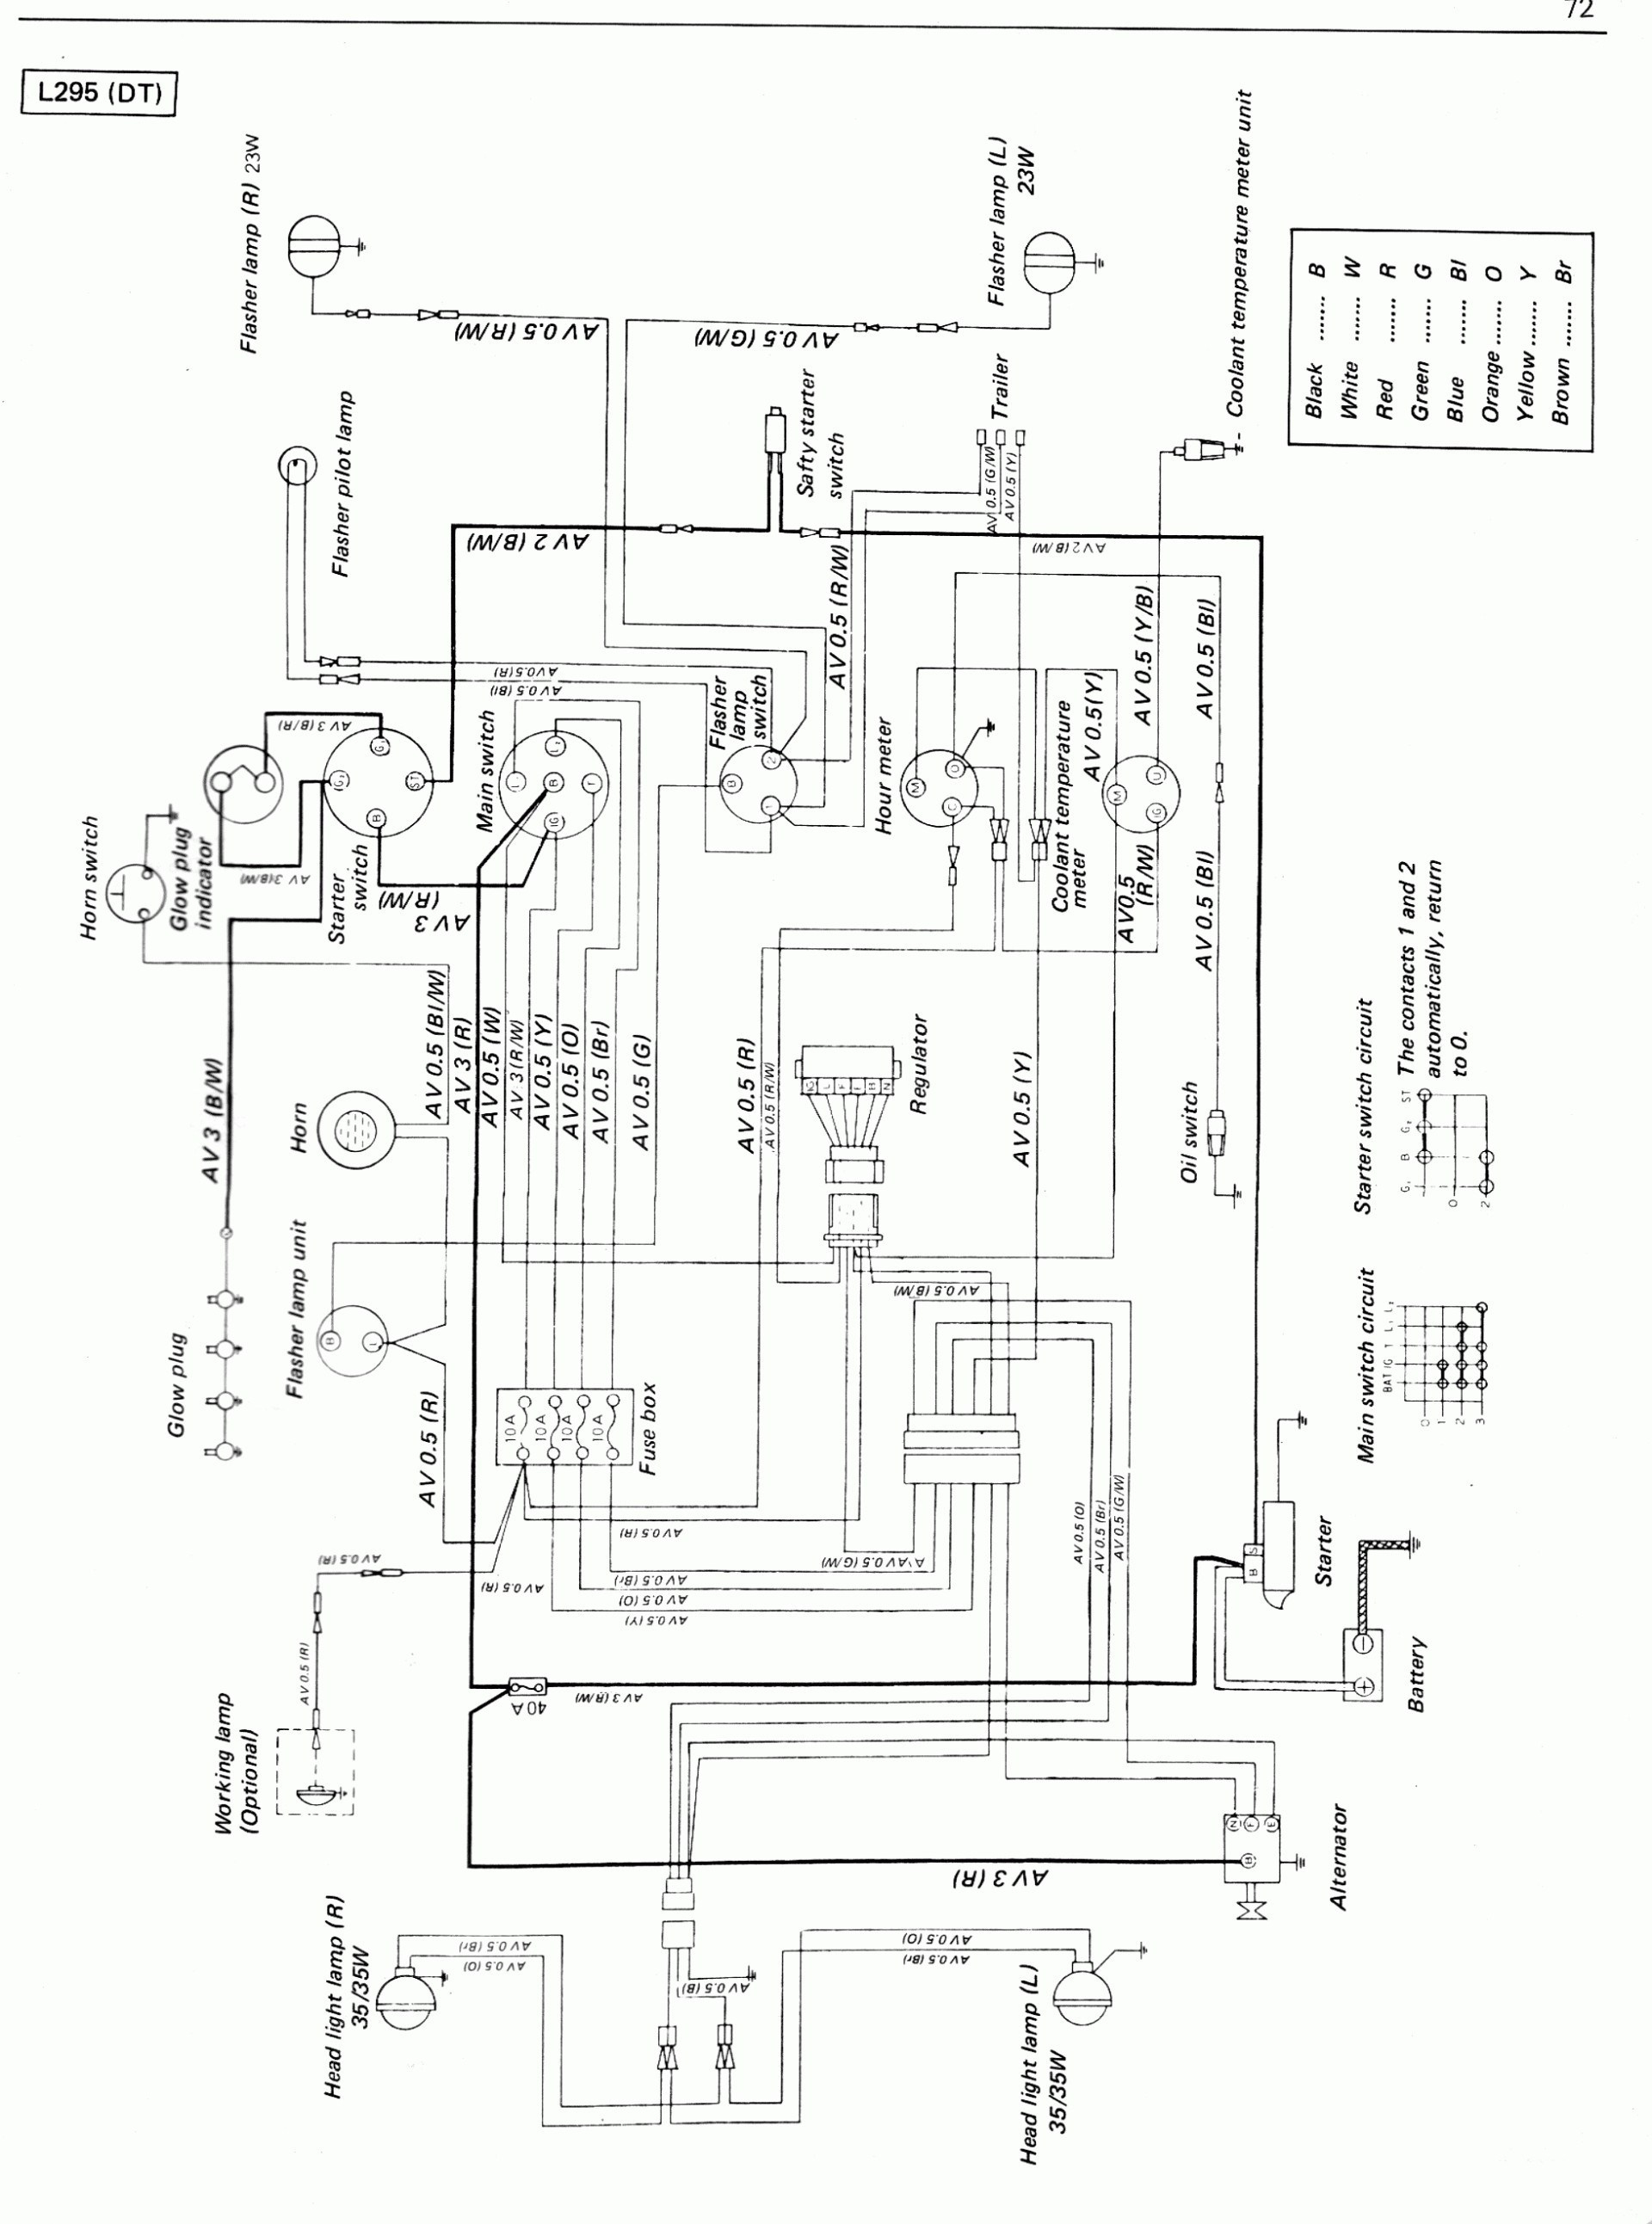 Wire Diagram For Kubota